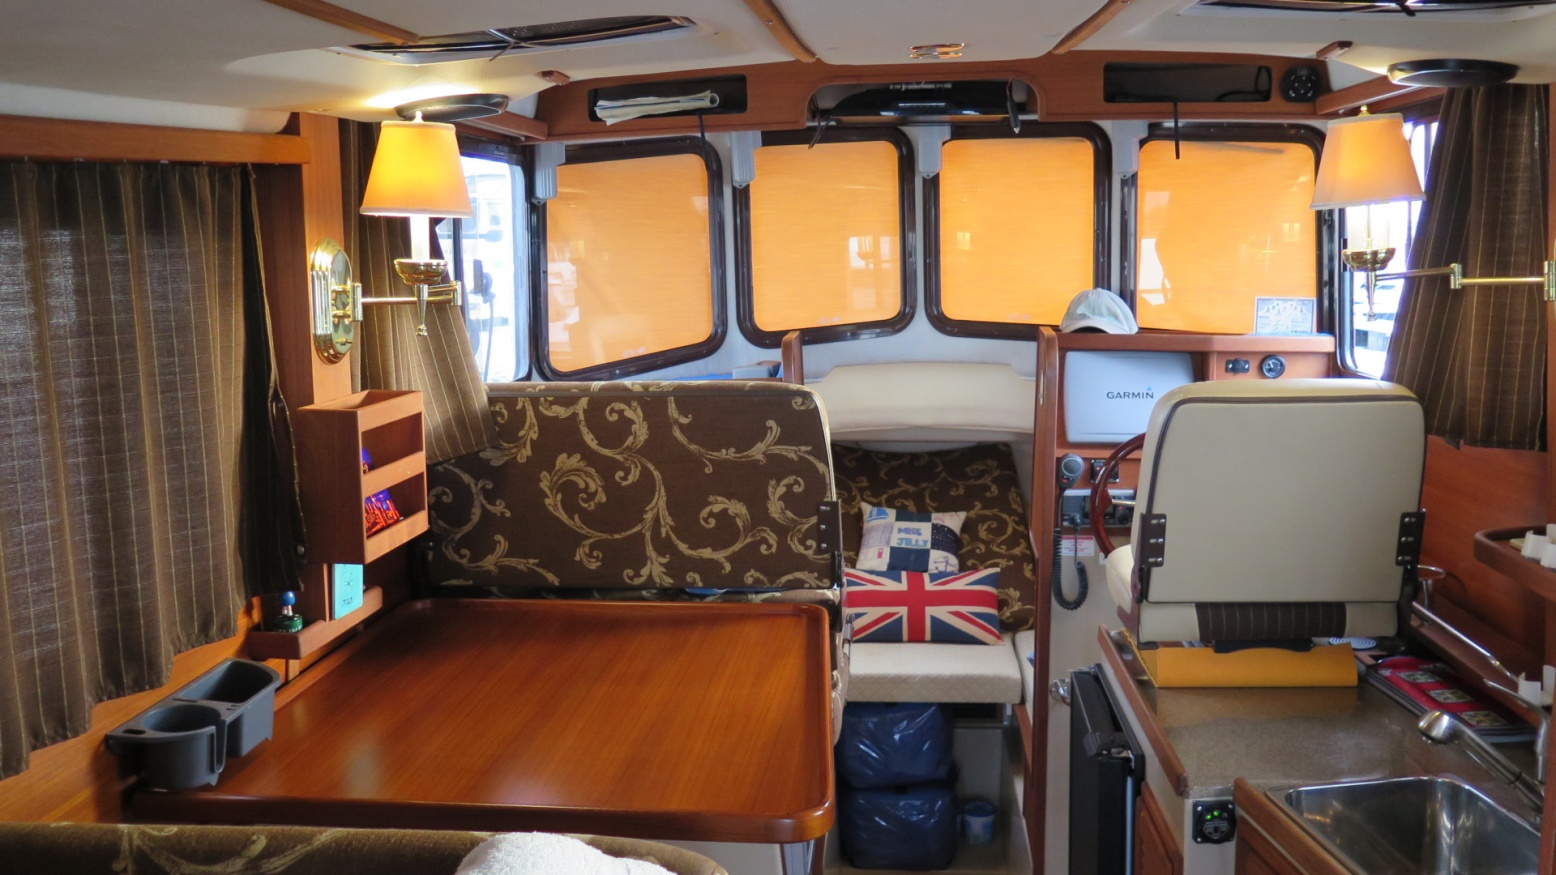 Click image for larger version  Name:Interior pics_MJilly (15).jpg Views:124 Size:402.5 KB ID:171966